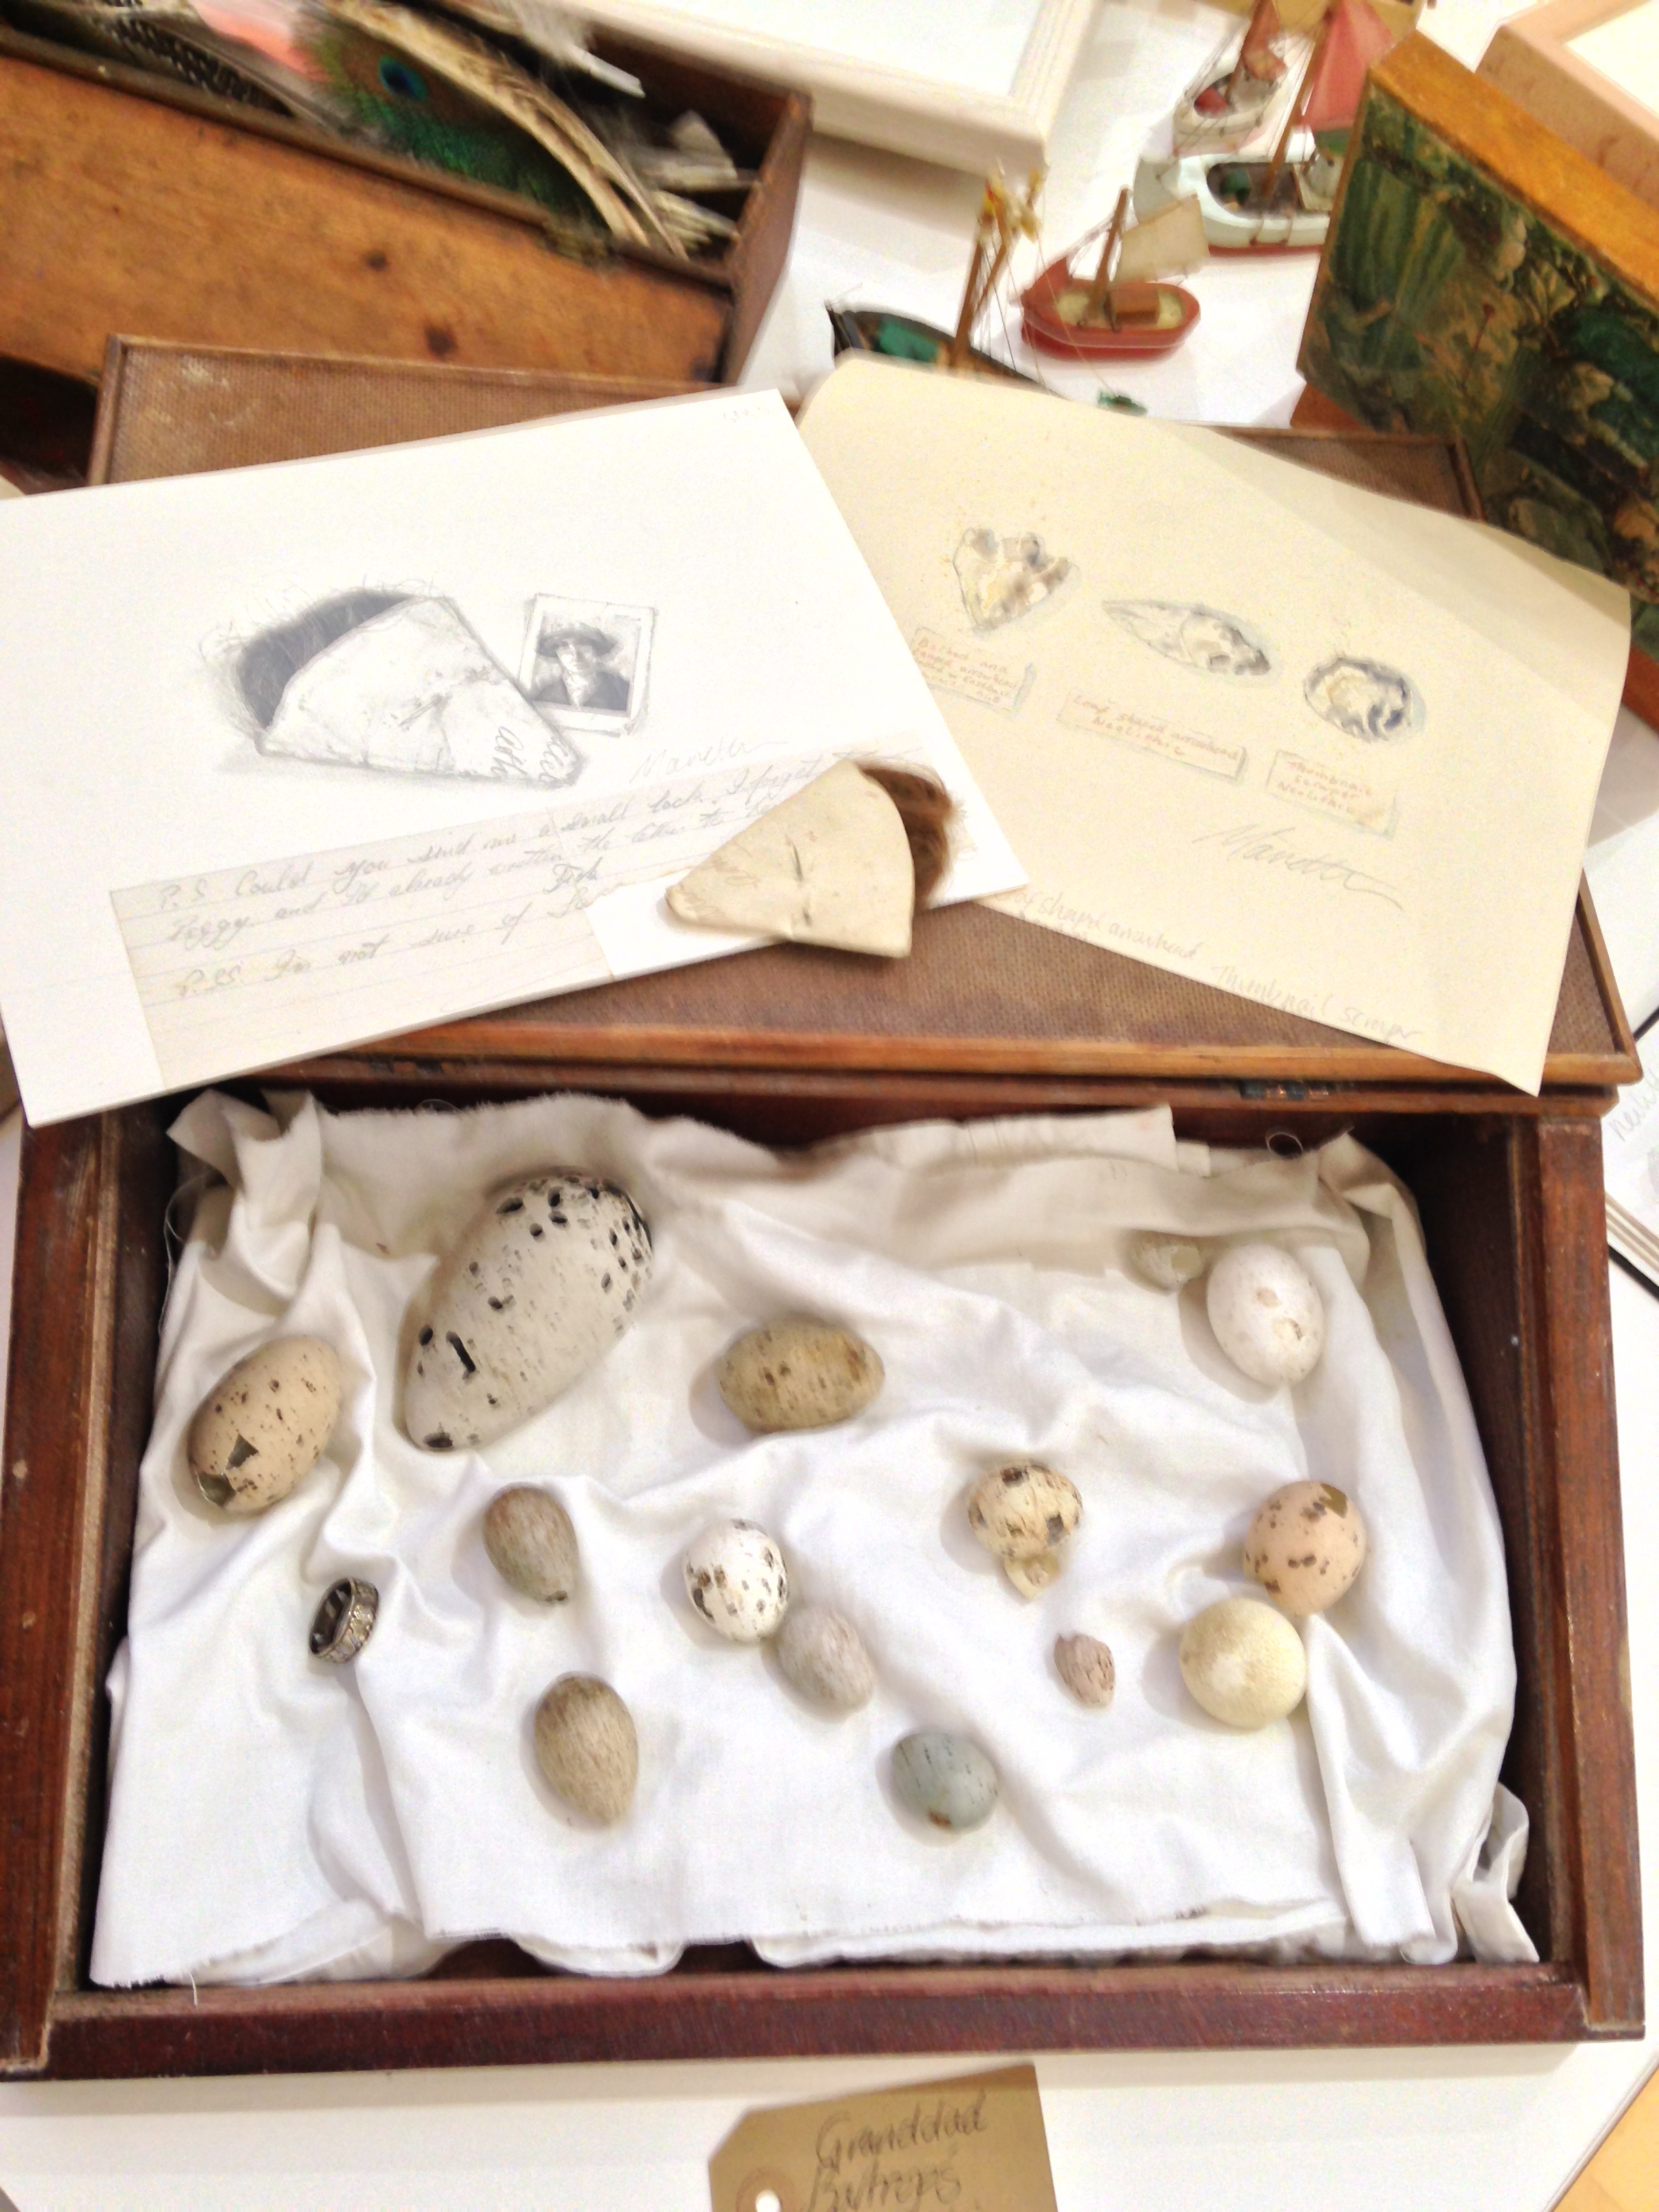 Collections and sketches.